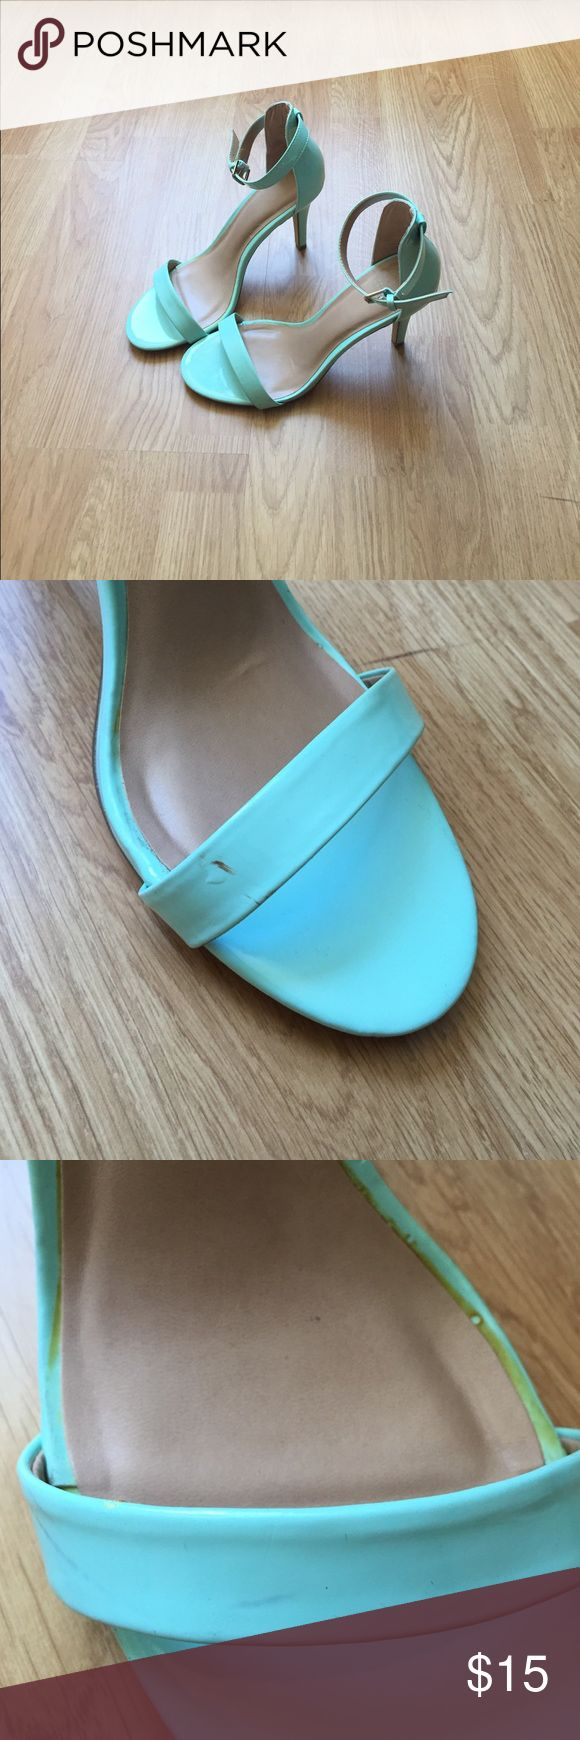 Mix No. 6 Turquoise Sandals!! Mix No. 6 Turquoise Sandal Heels!! Very cute, very comfy, only worn once!! Priced low because of a few scuffs on the front, and discoloration from under the foot pad. Mix No. 6 Shoes Heels